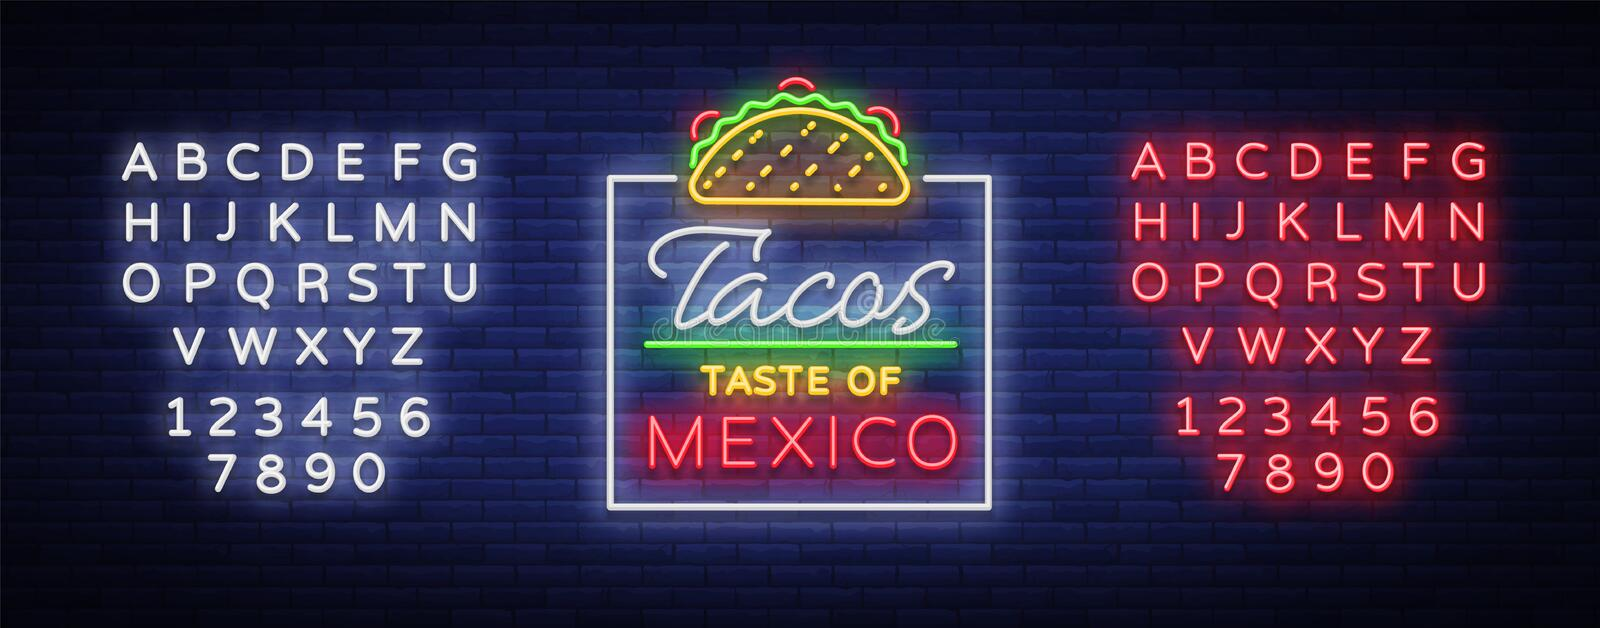 Taco logo vector. Neon sign on Mexican food, Tacos, street food, fast food, snack. Bright neon billboards, shining stock illustration